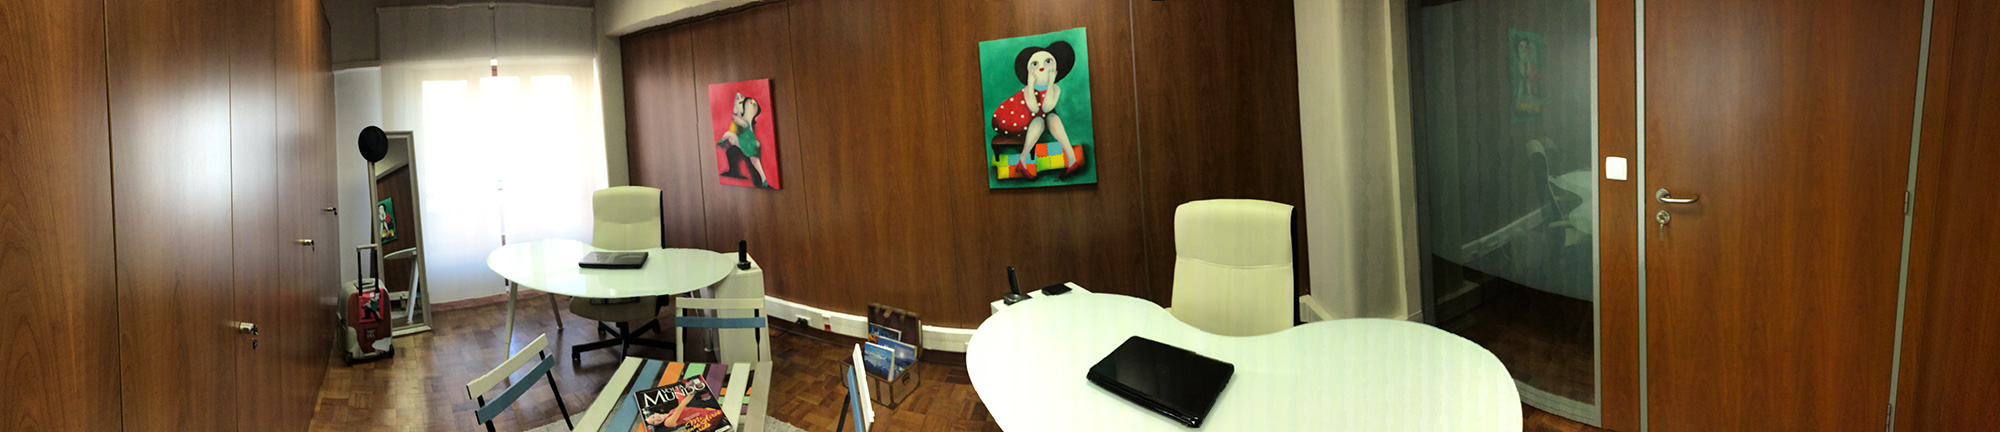 Tryvel Office - Comercial Room |  Buenos Aires Café